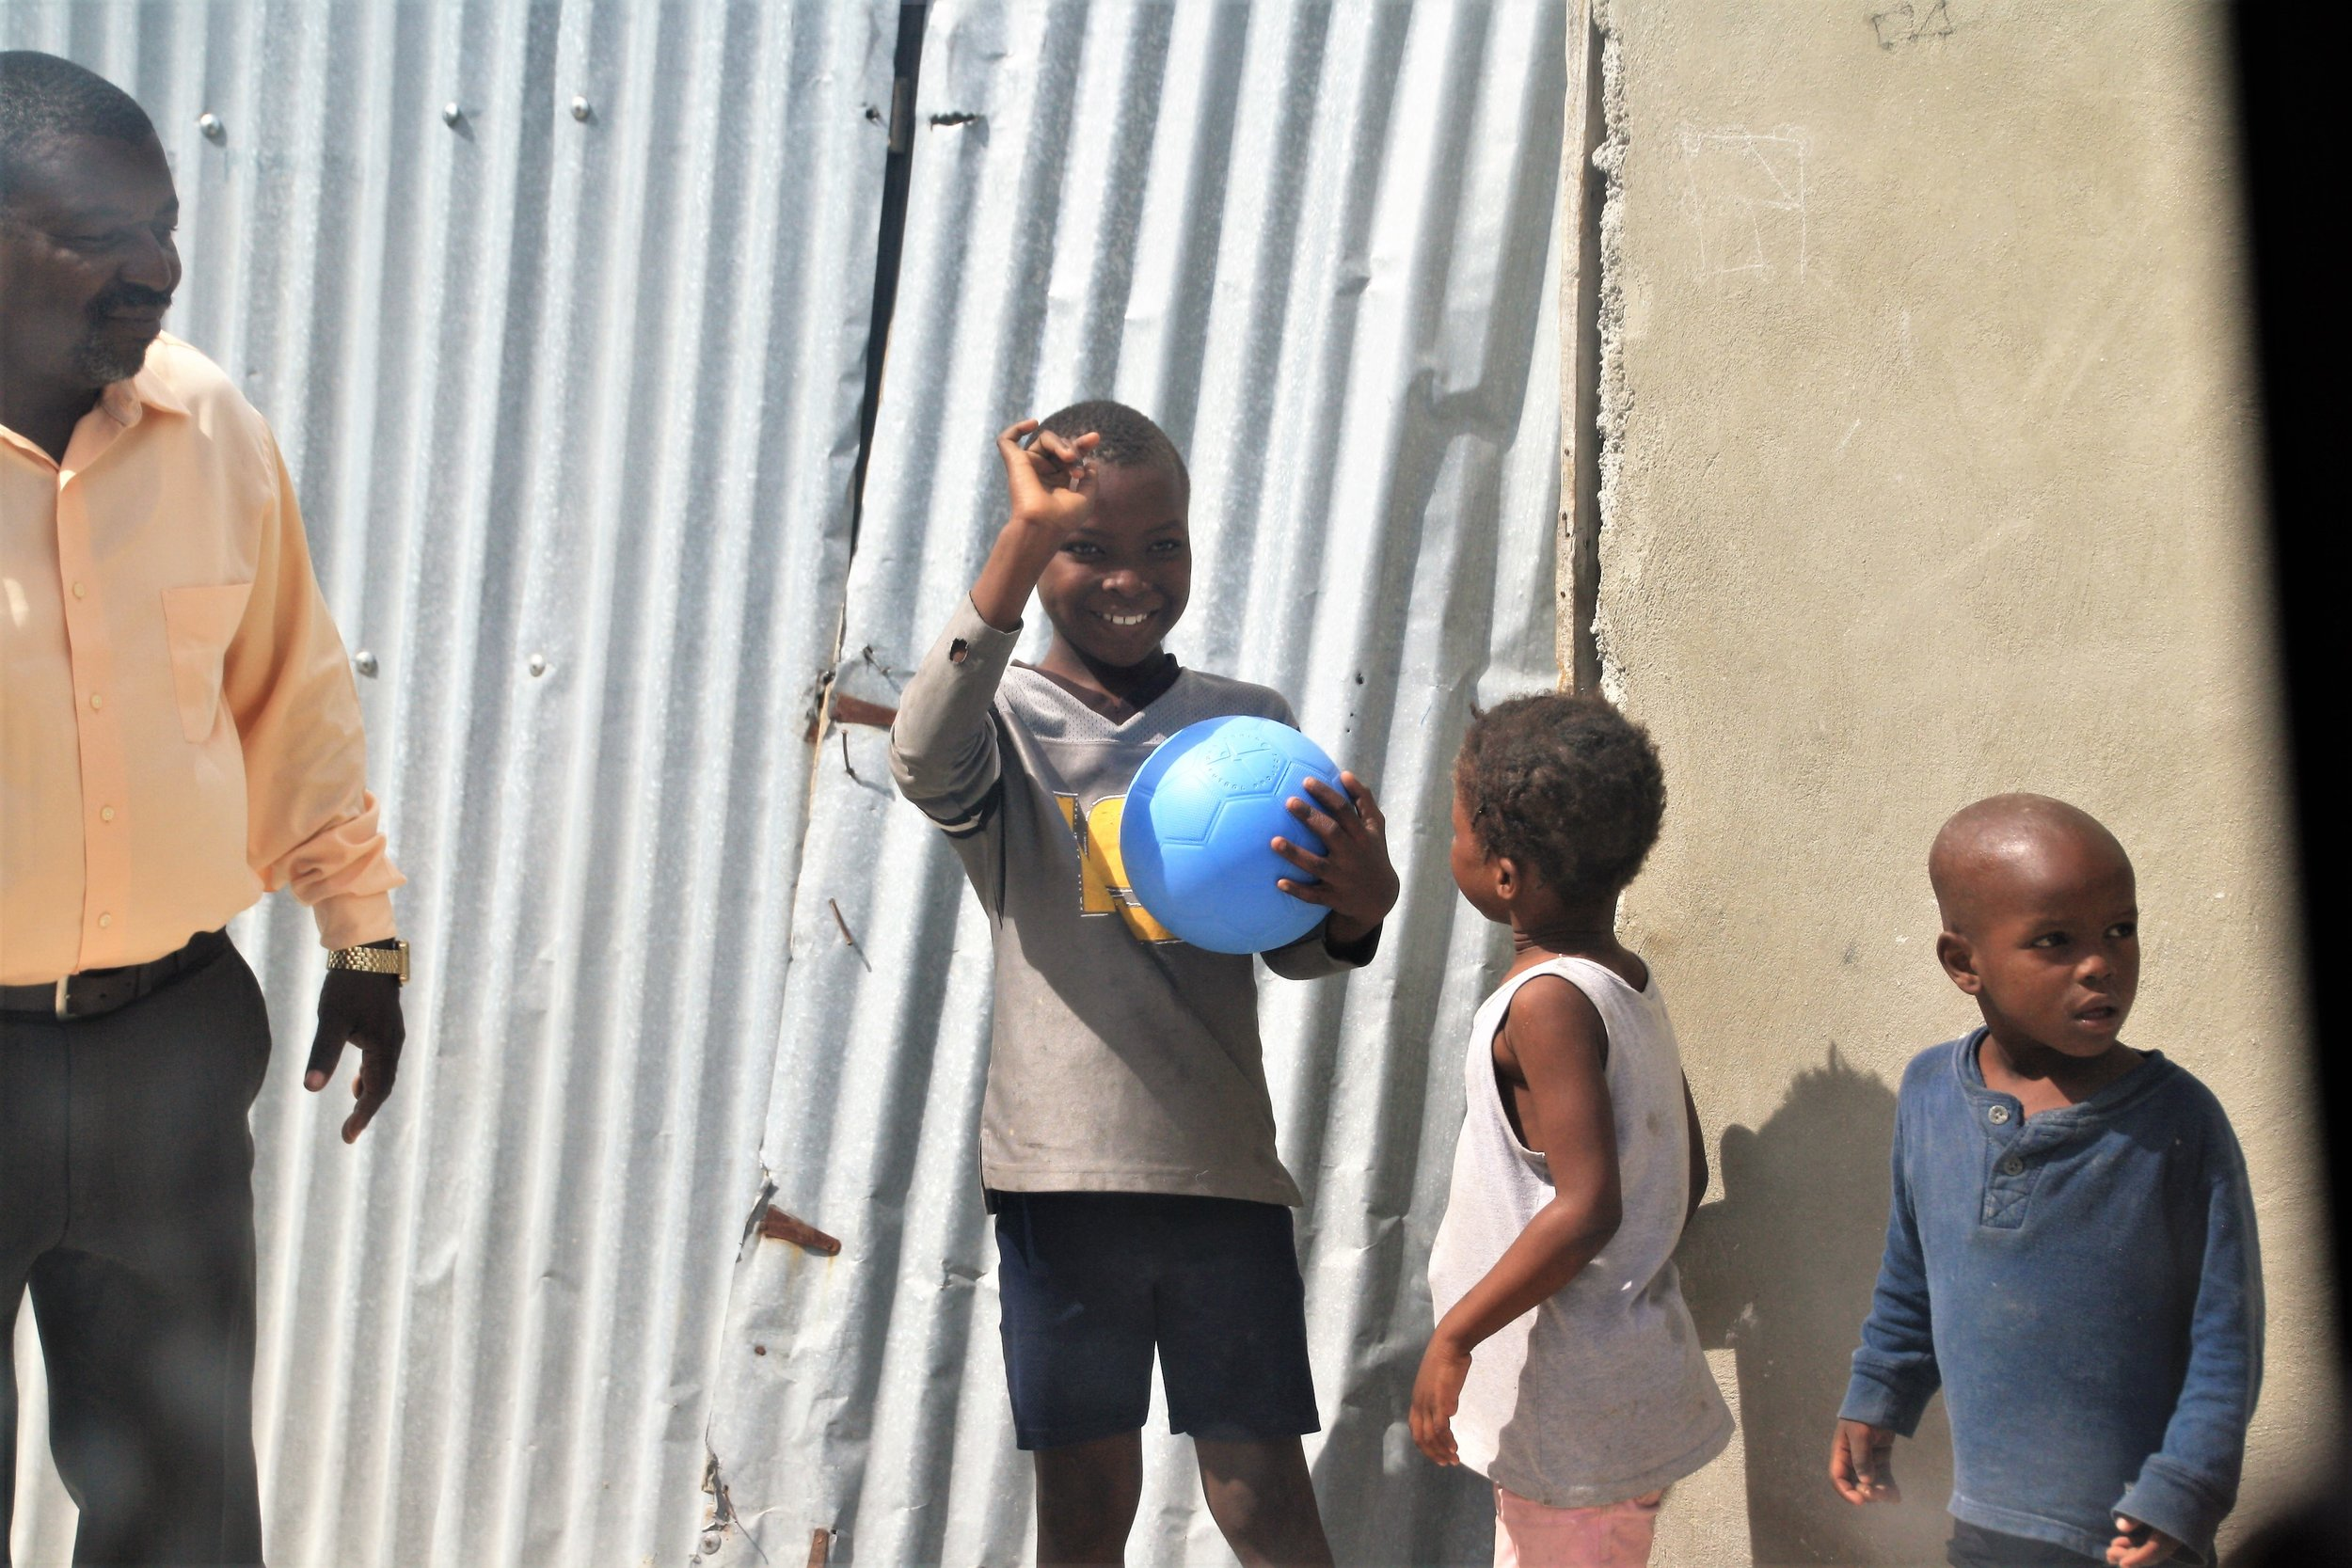 A young boy smiles and waves,delighted by his new soccer ball. Image: Lorelle Shea